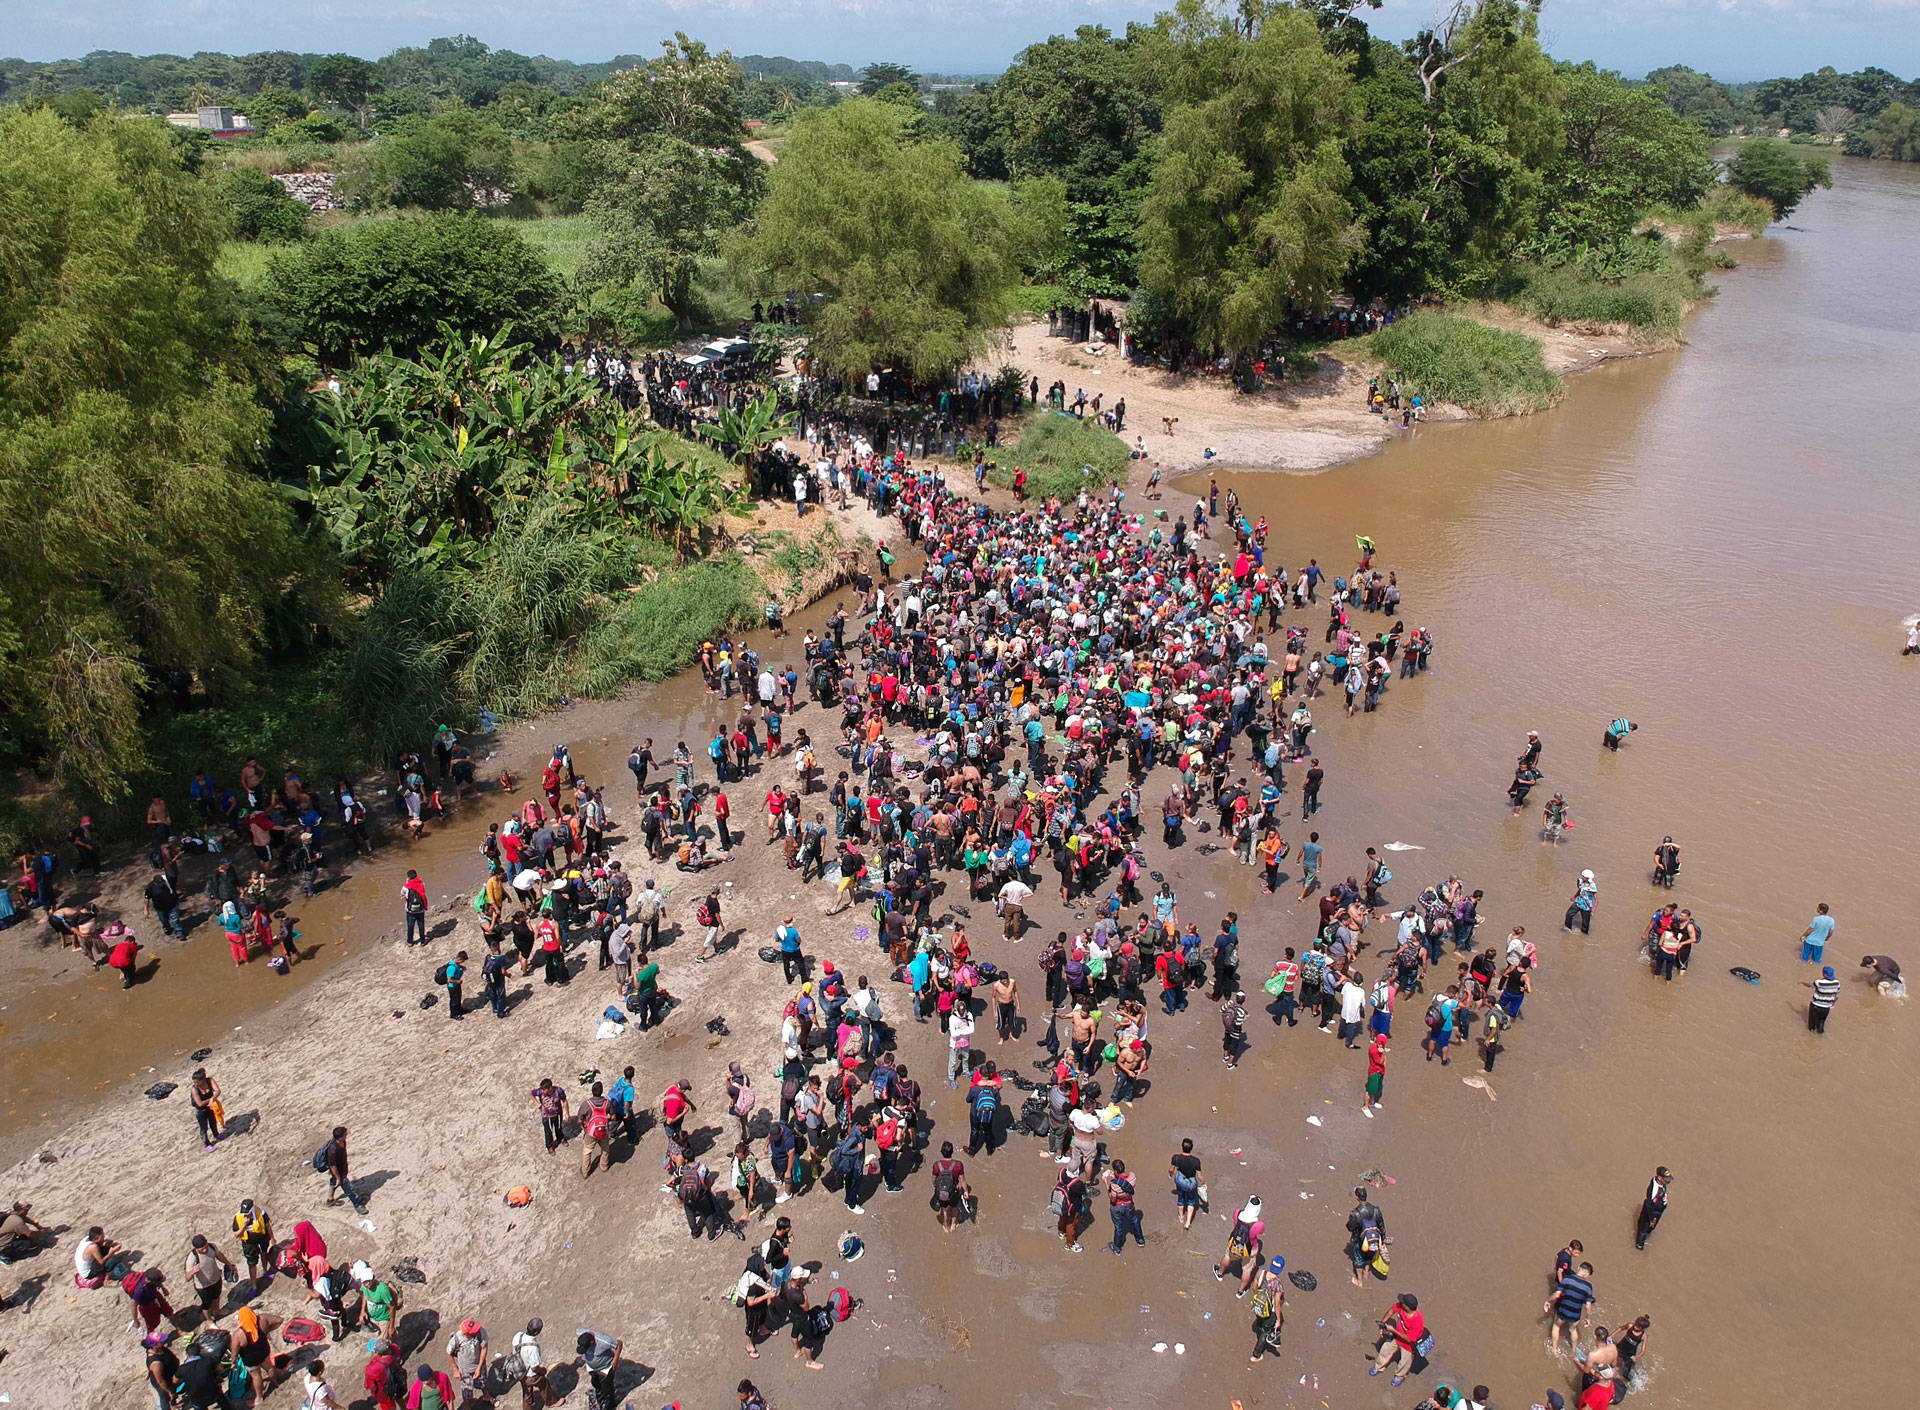 Migrants reach Mexico after crossing the Suchiate River from Tecun Uman in Guatemala to Ciudad Hidalgo in Mexico on Oct. 29, 2018, a day after a security fence on the international bridge was reinforced to prevent them from passing through. CARLOS ALONZO/AFP/Getty Images